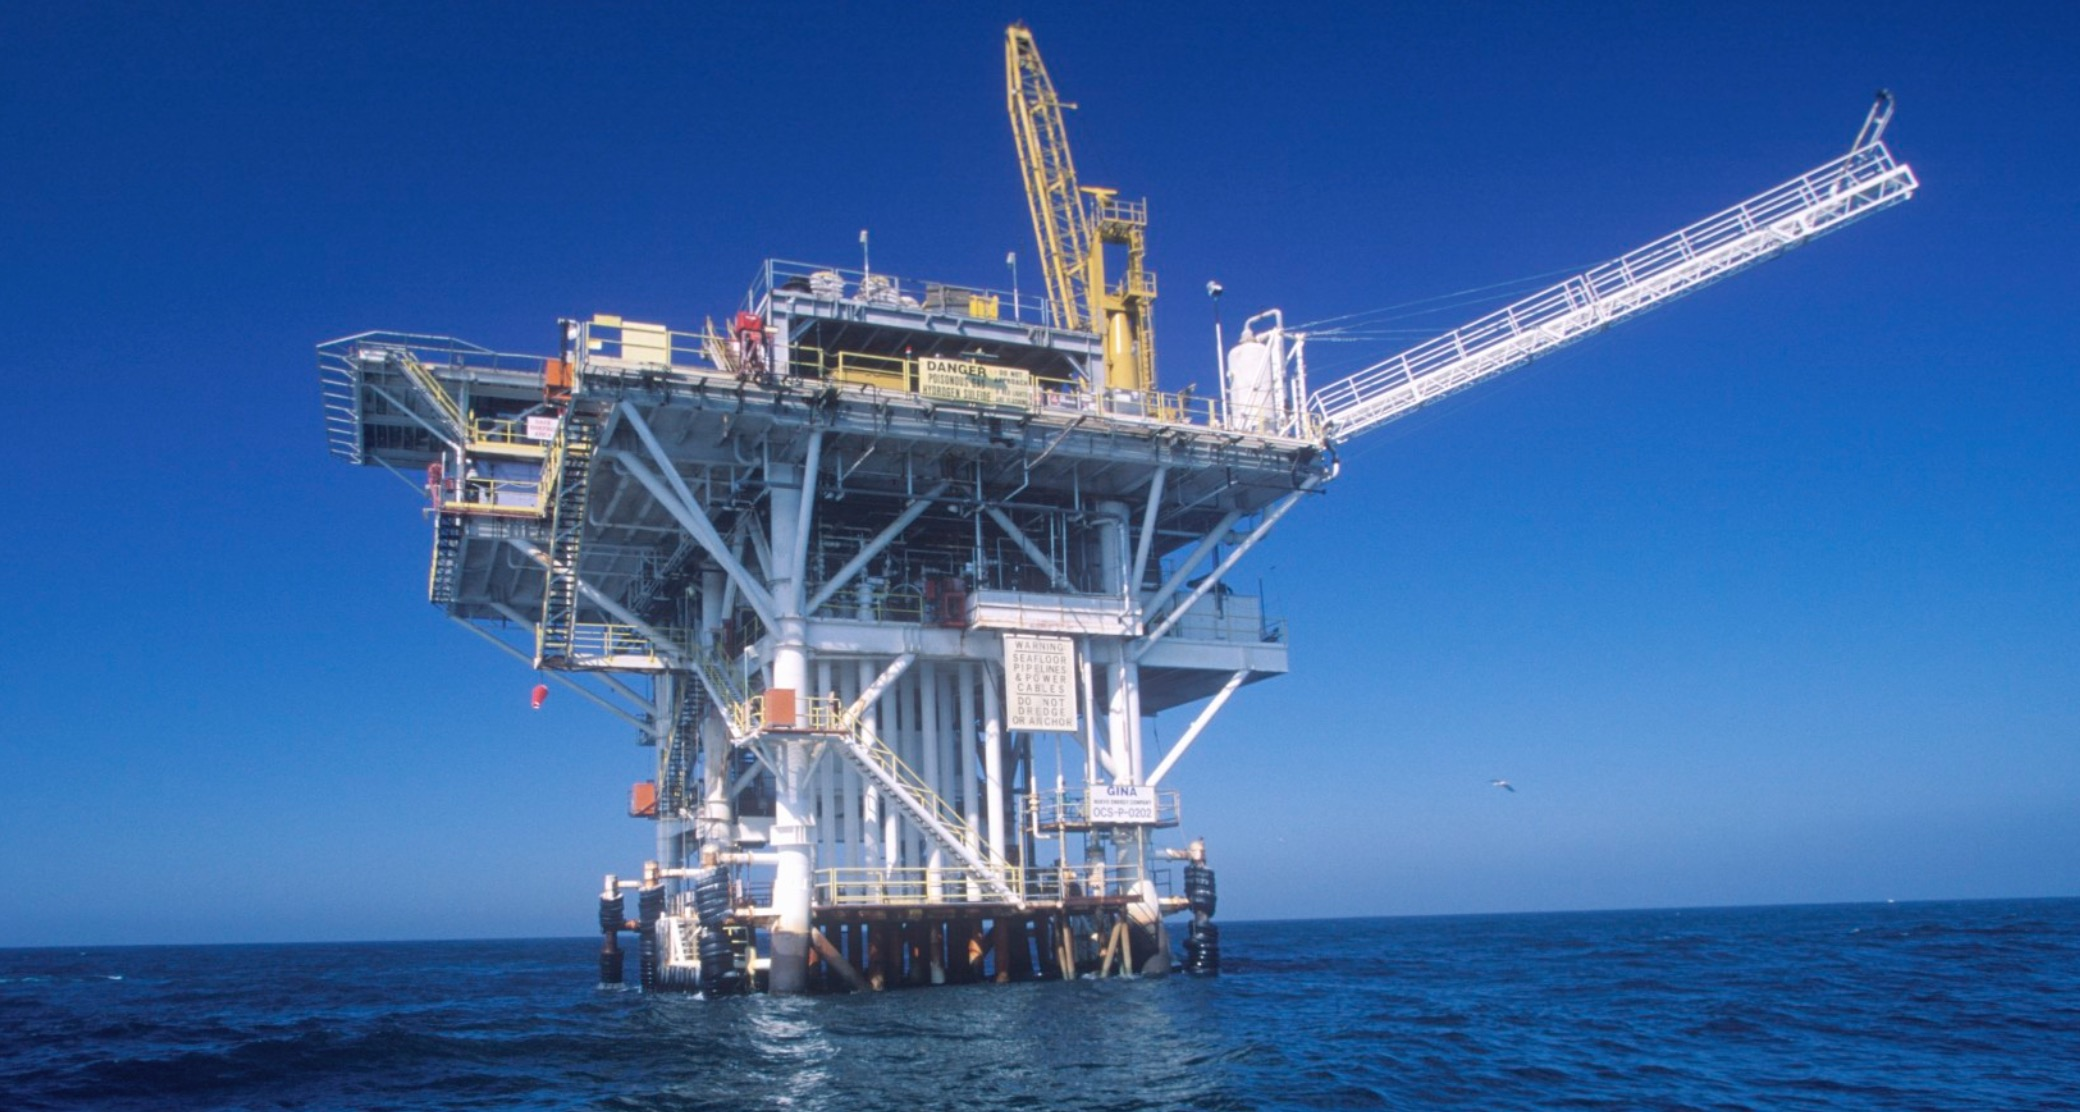 Florida's Bipartisan opposition to offshore oil drilling grows